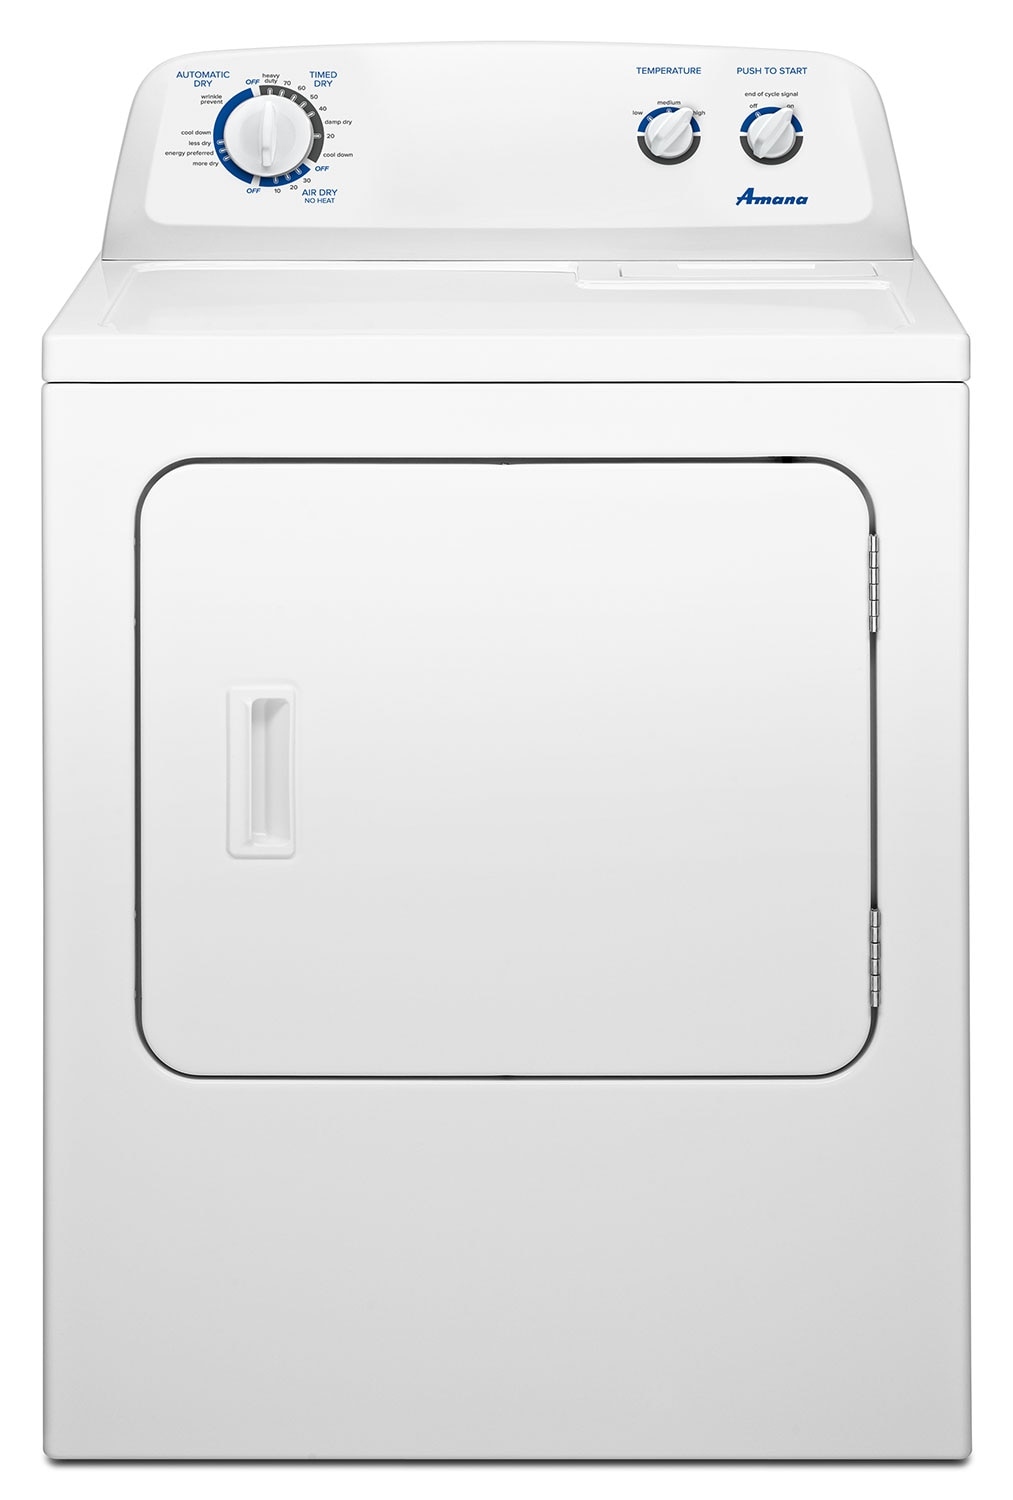 Amana White Dryer 7.0 Cu. Ft. - YNED4755EW